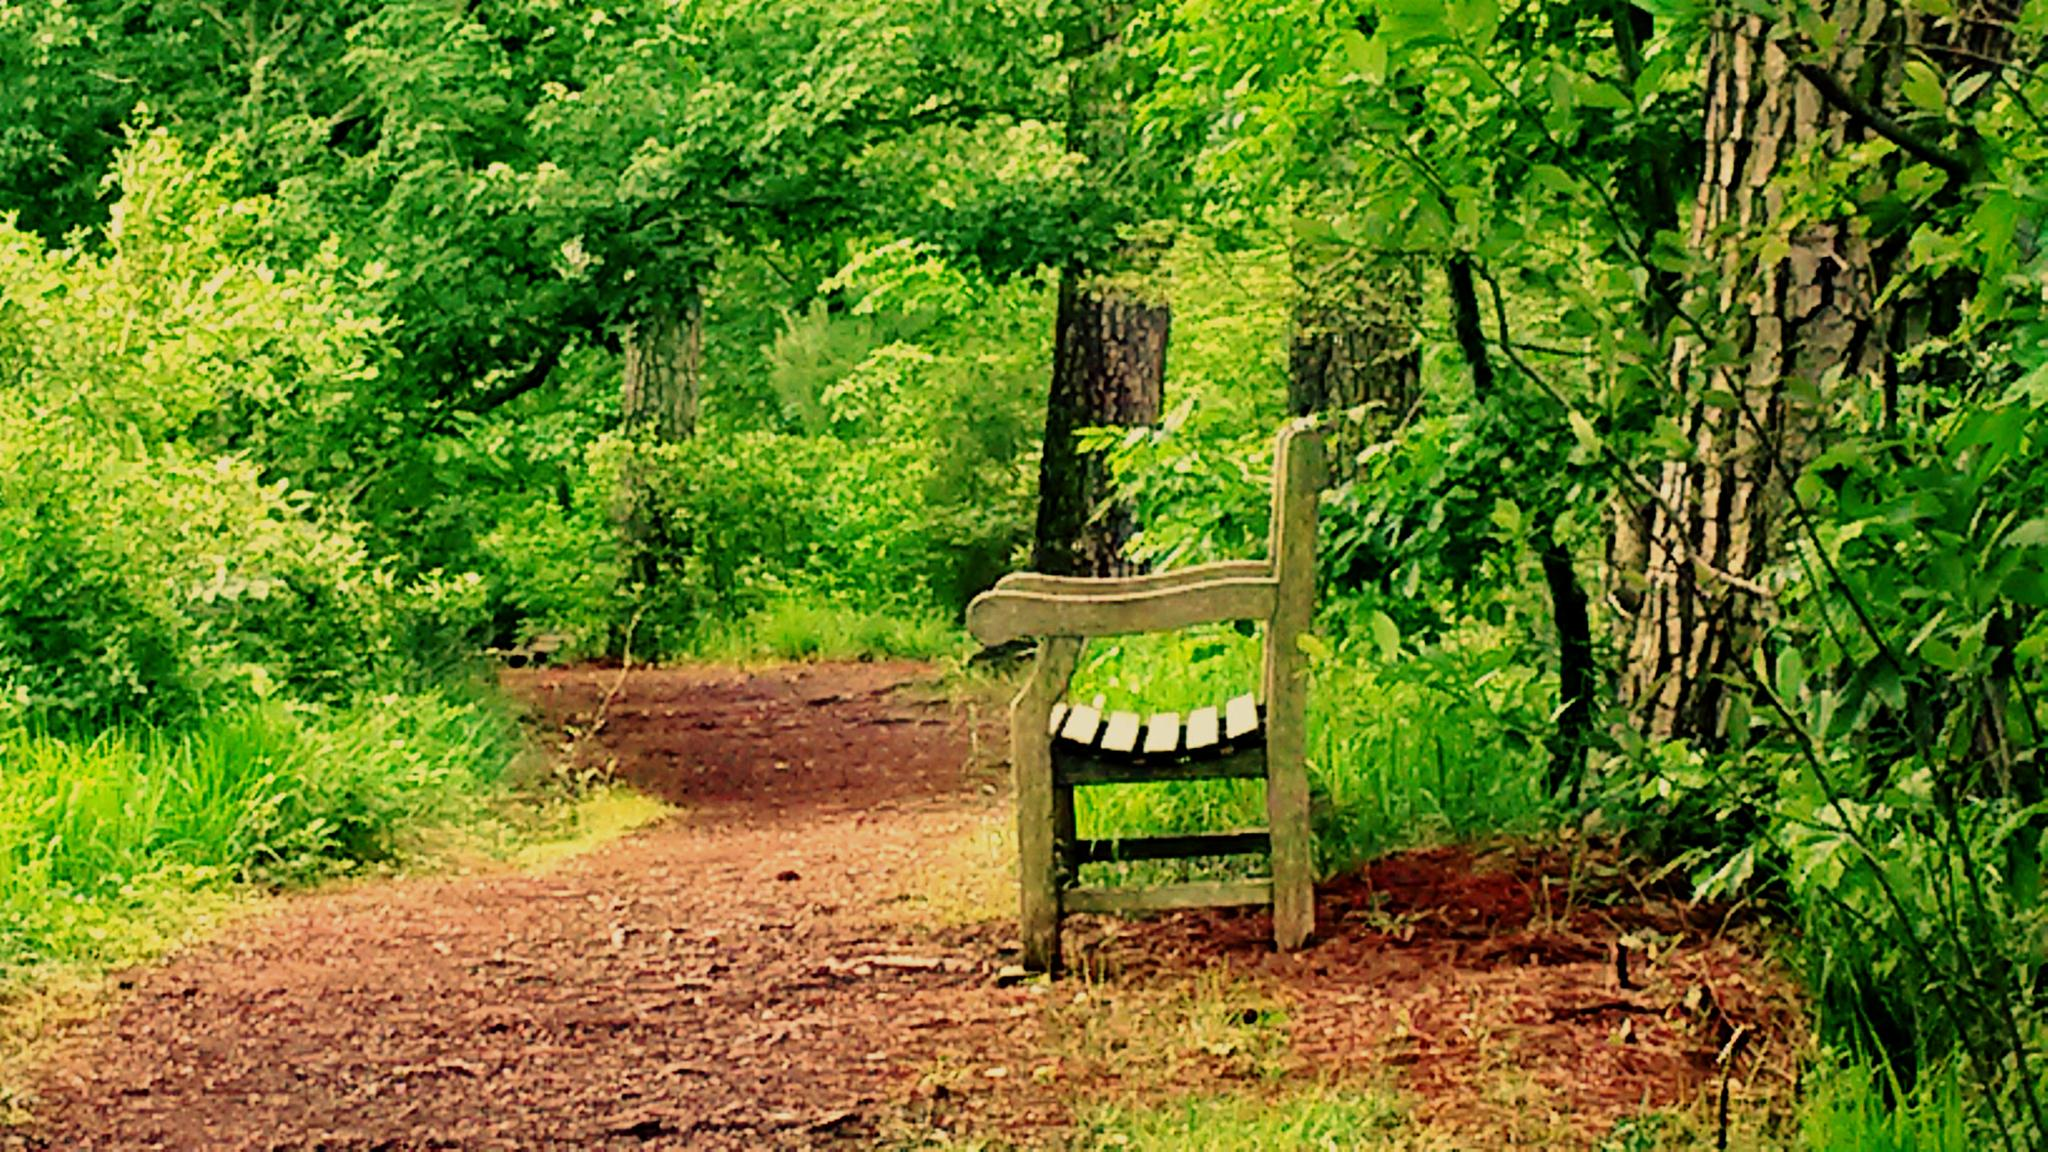 Photo in Landscape #woods #foliage #trees #tree #path #pathway #outdoors #bench